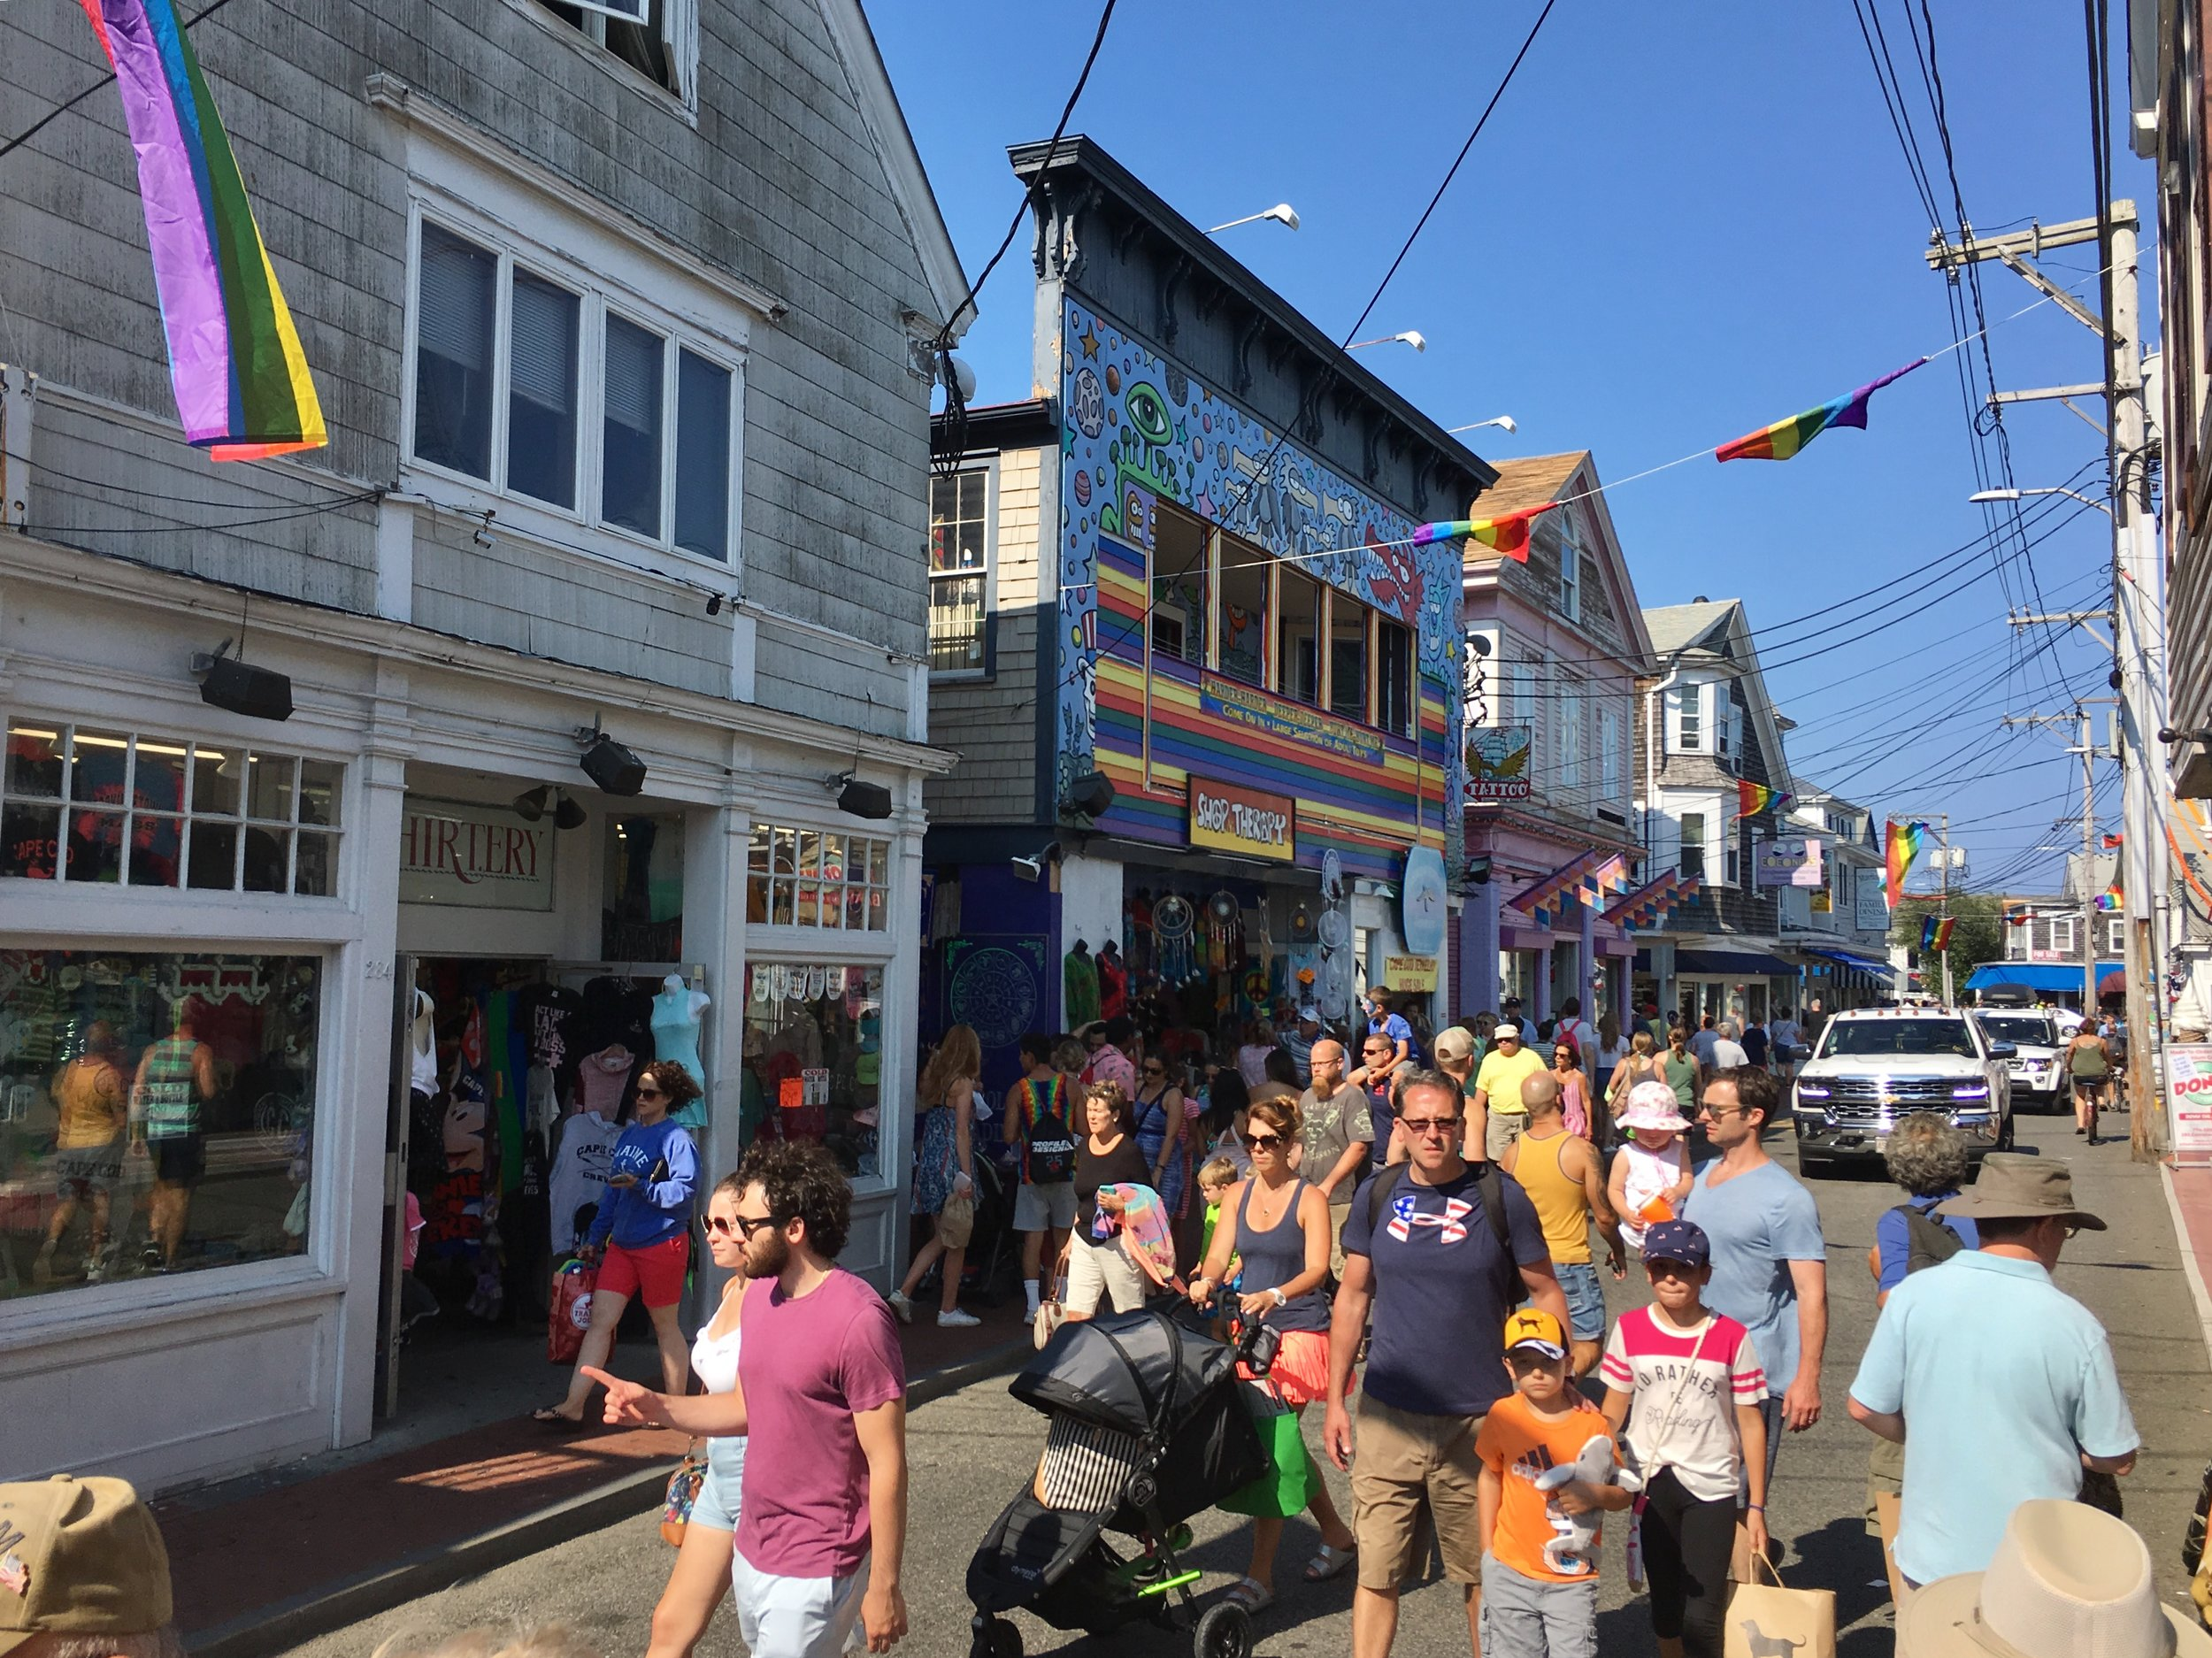 Commercial Street in Provincetown, MA, where cars are welcome but treated as guests. (Photo by the author)